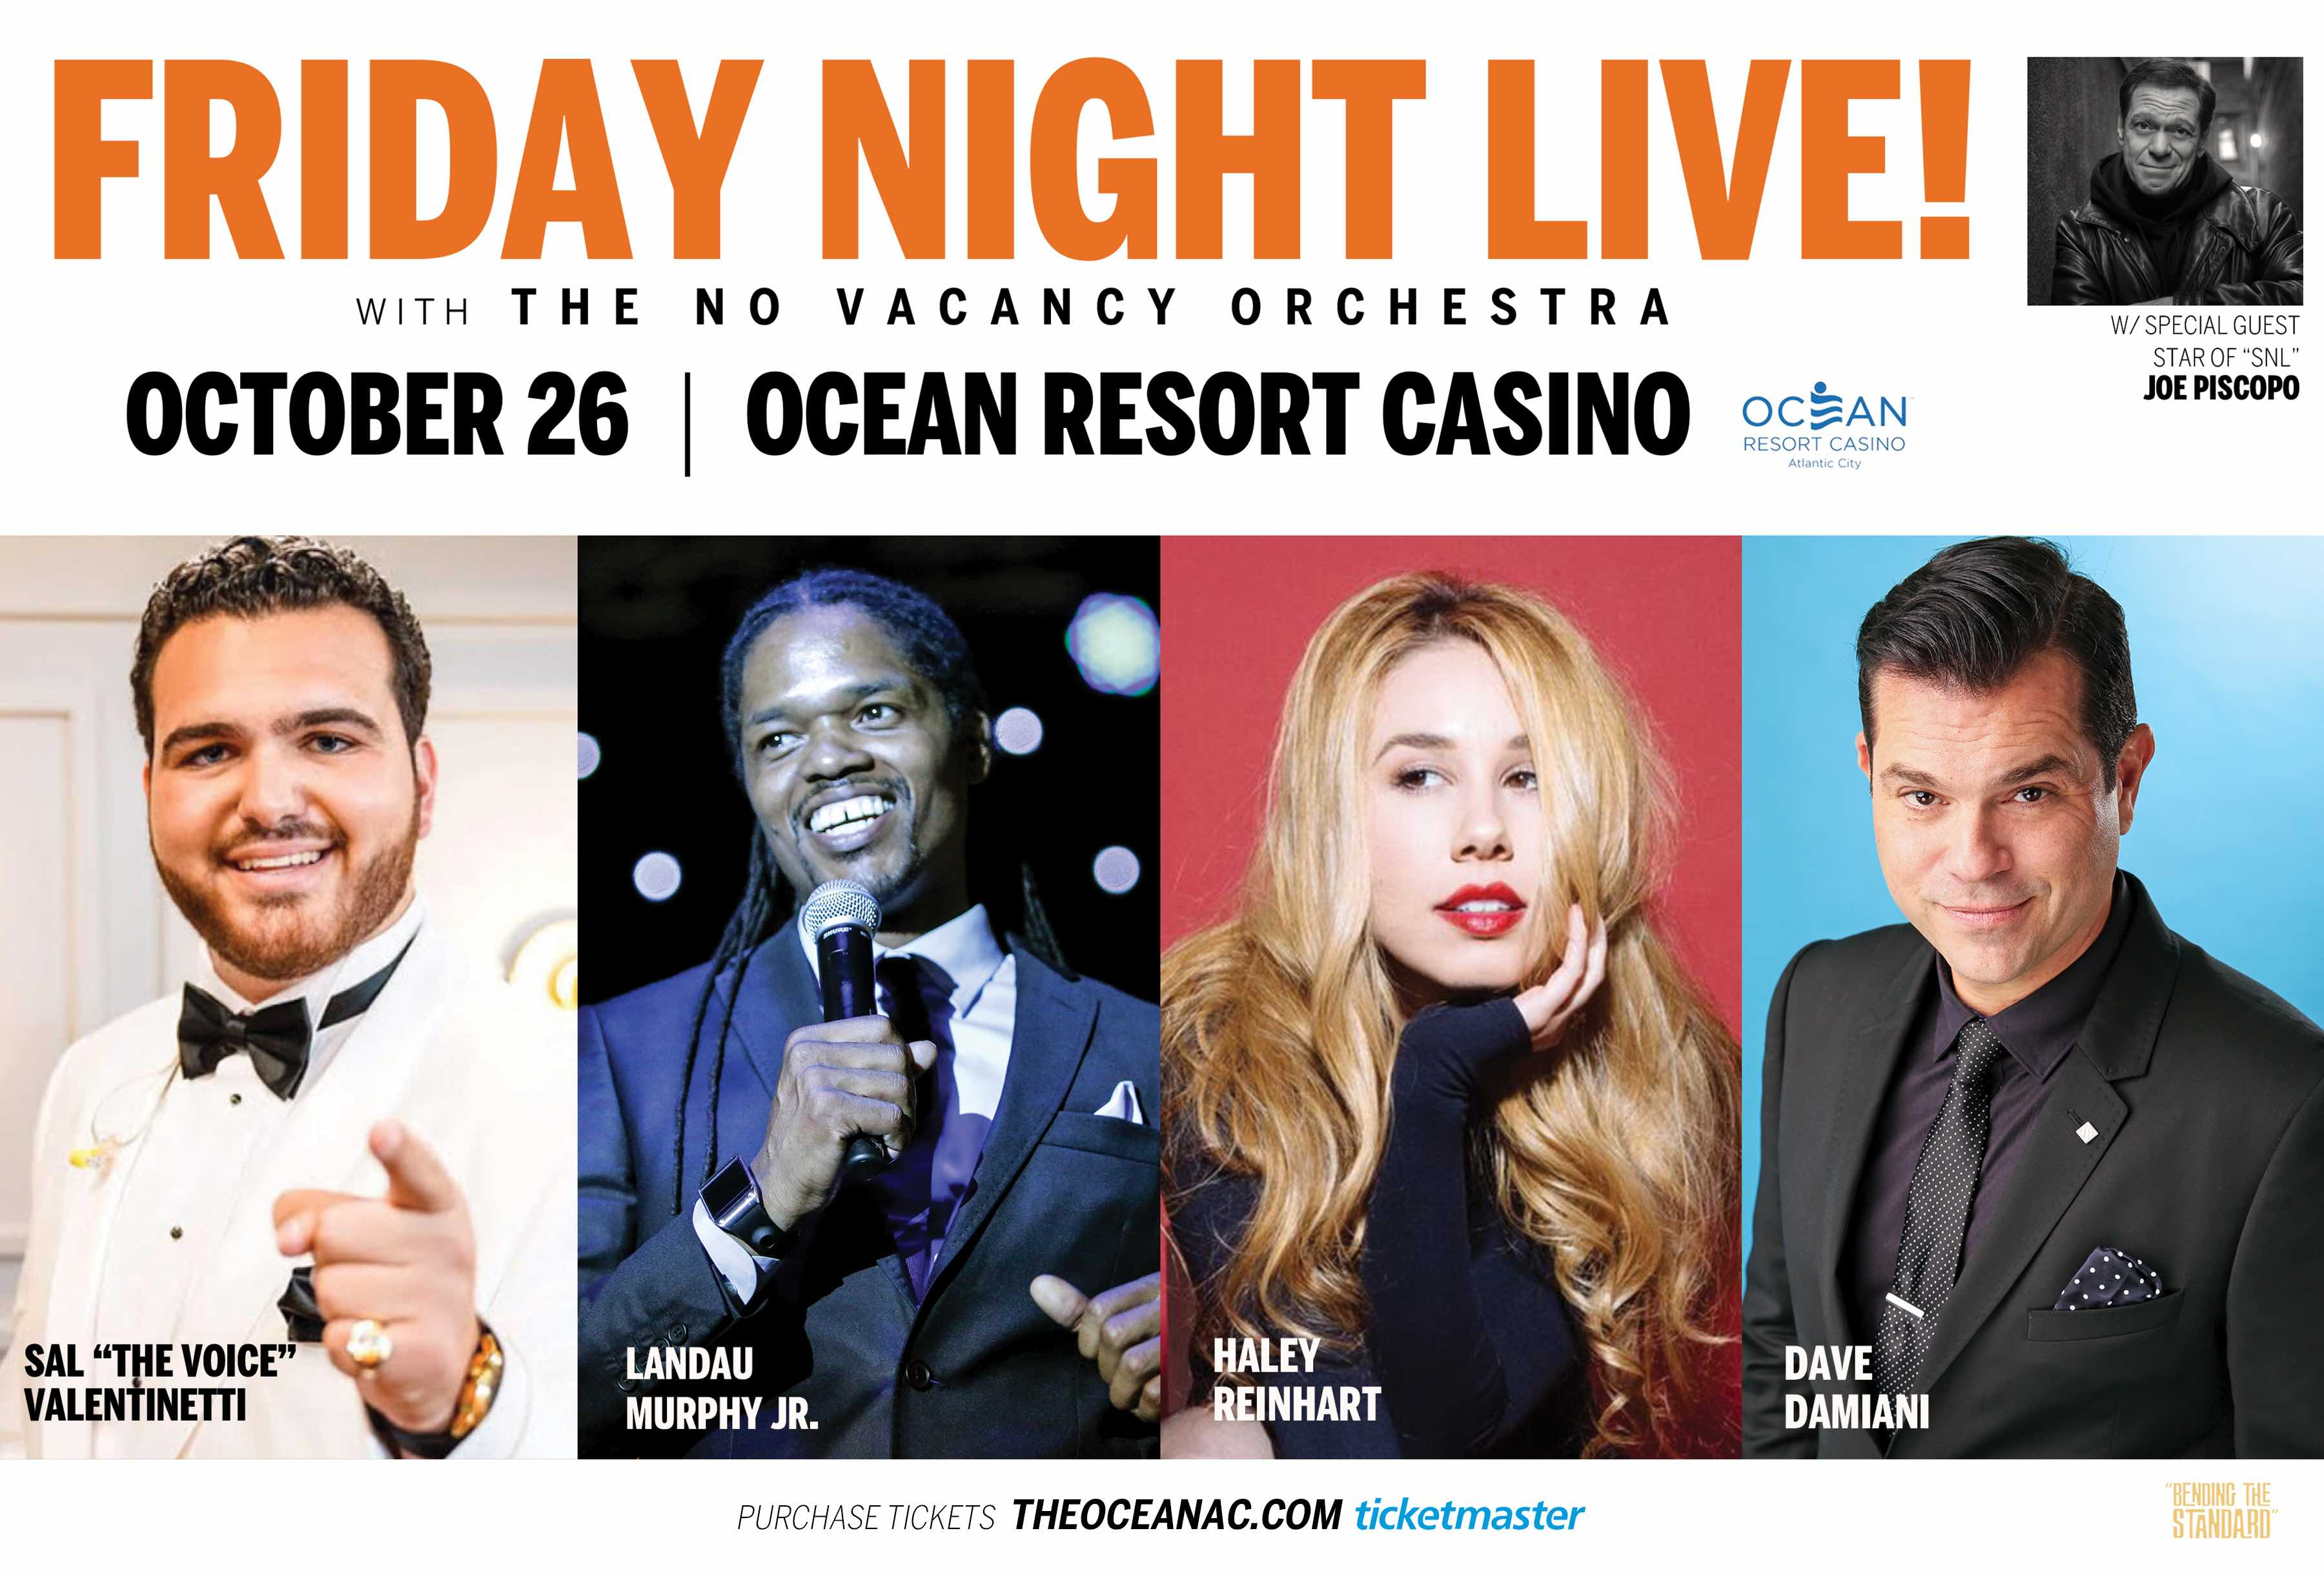 Friday Night Live - Sal, Haley, Landau, Damiani & Piscopo